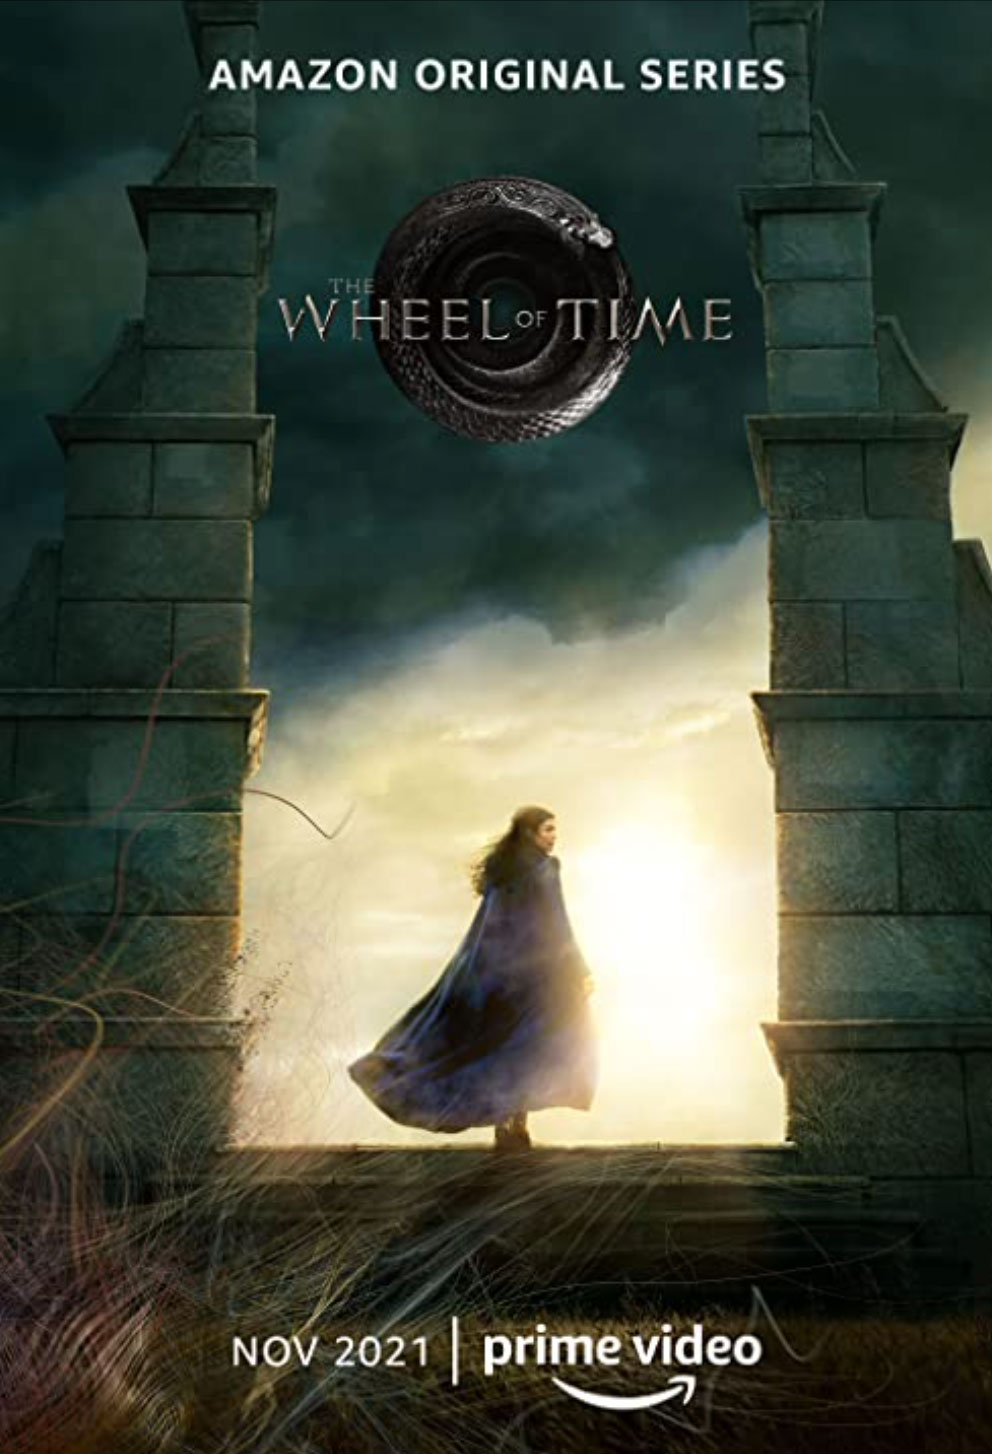 The Wheel of Time poster